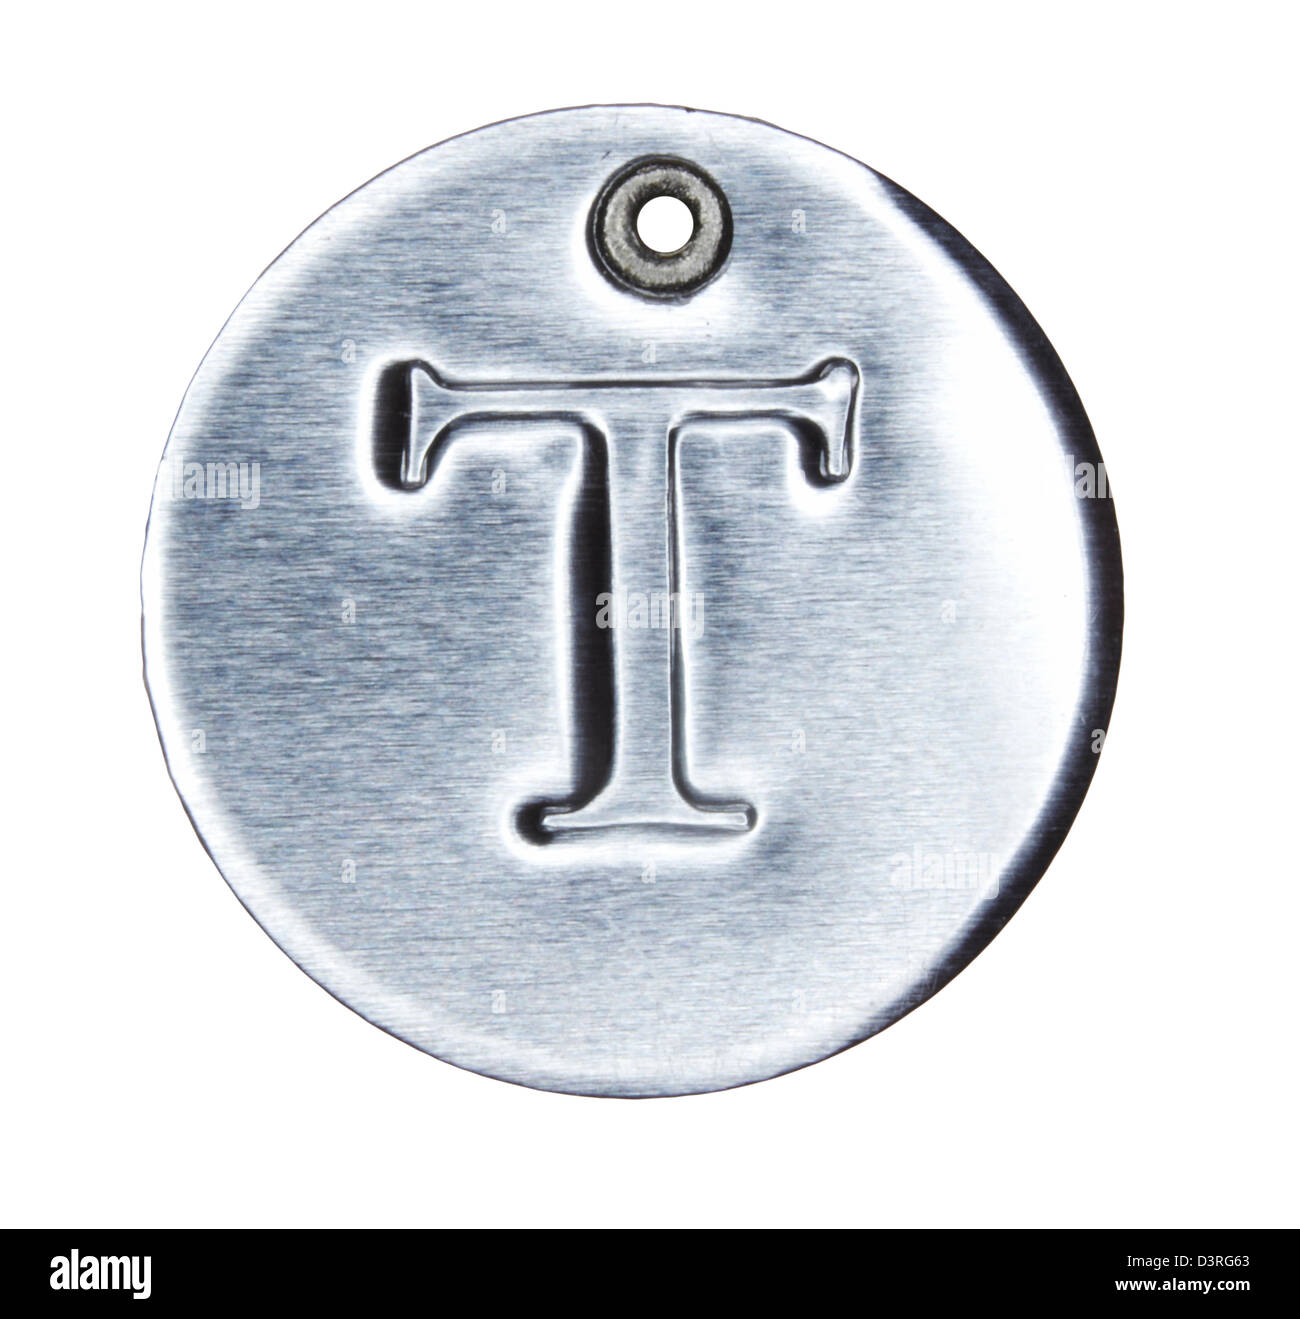 Brushed metal letter of the alphabet T - Stock Image